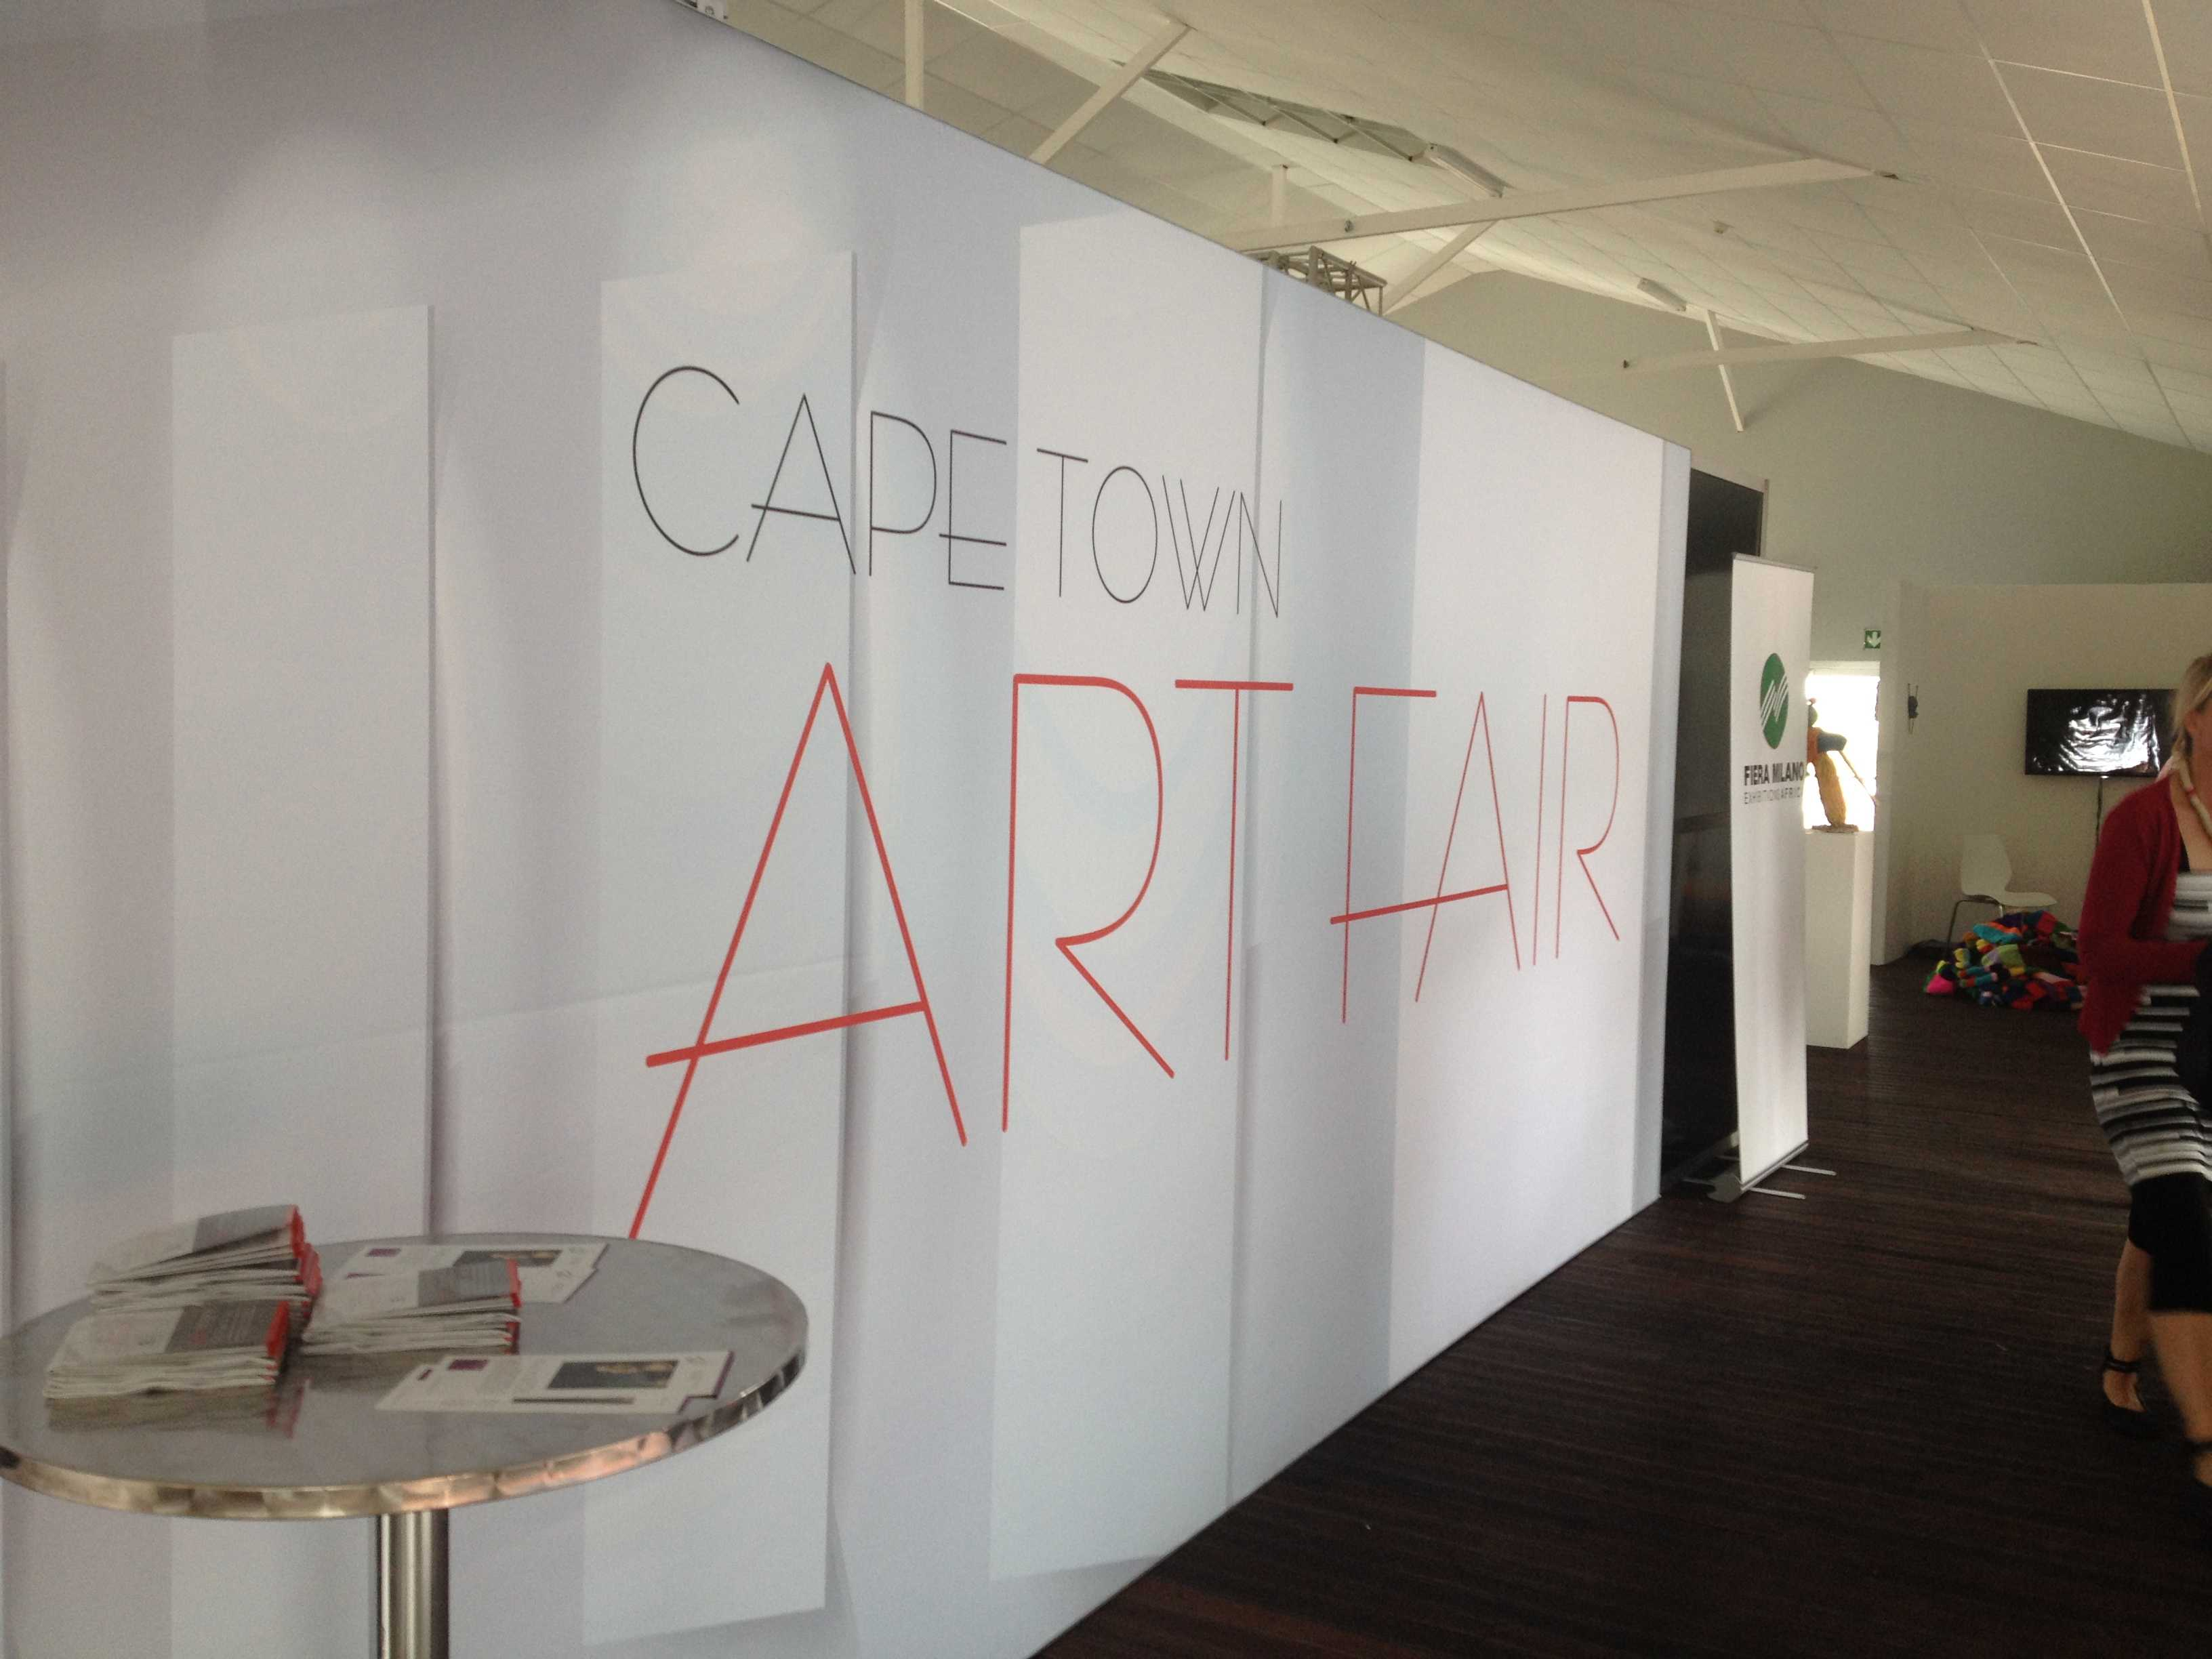 Cape Town Art Fair 2013 Entrance